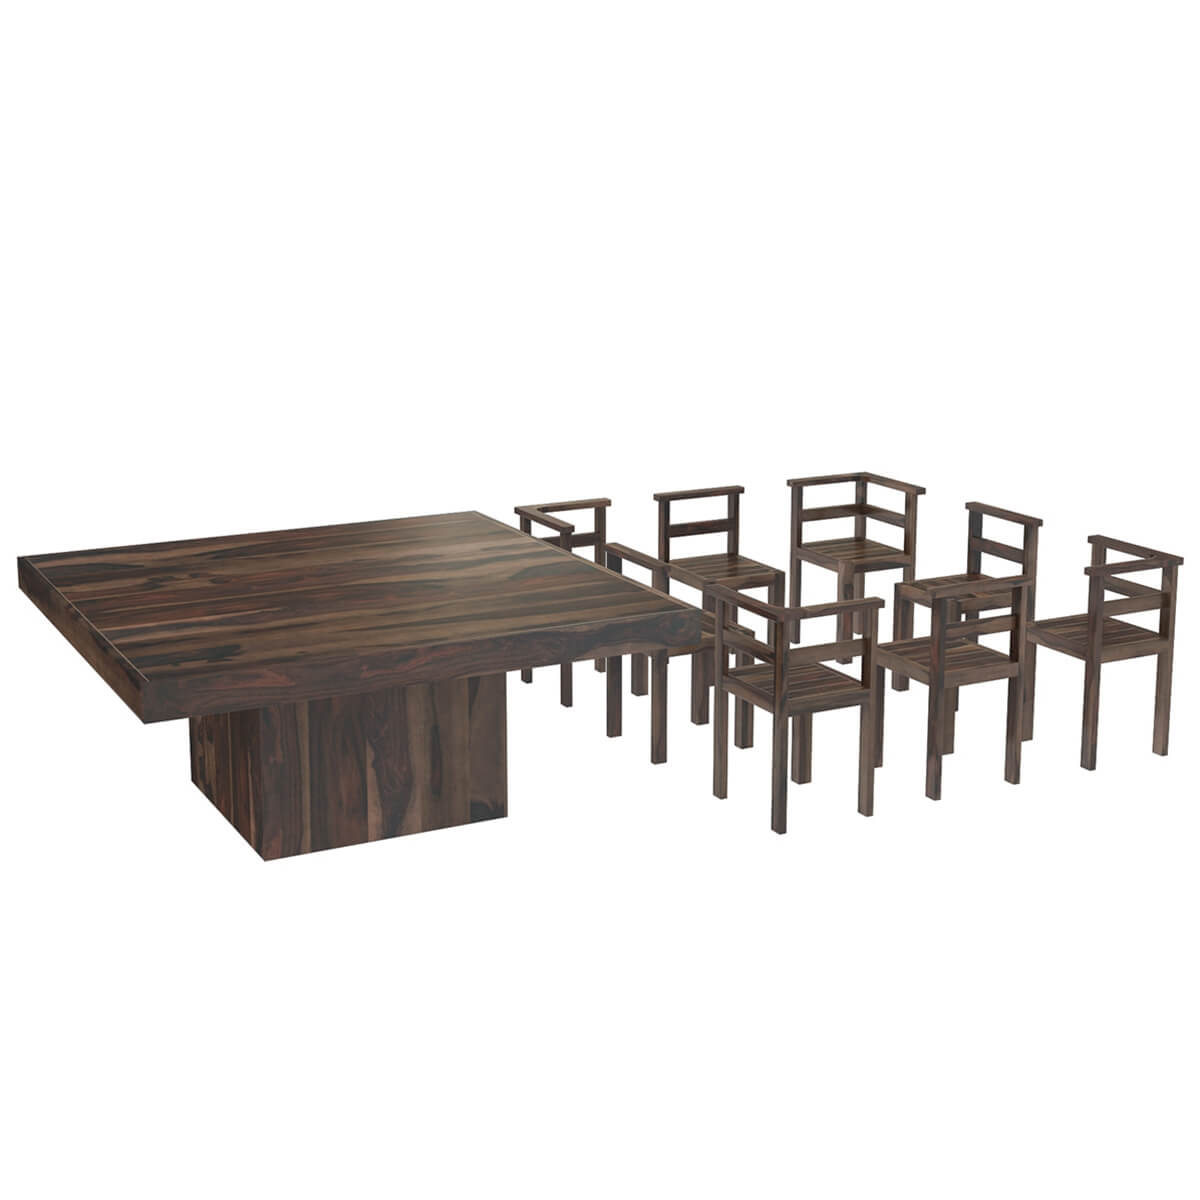 "Rustic Solid Wood Large Square Dining Table Chair Set: Modern Rustic Solid Wood 64"" Square Pedestal Dining Table"